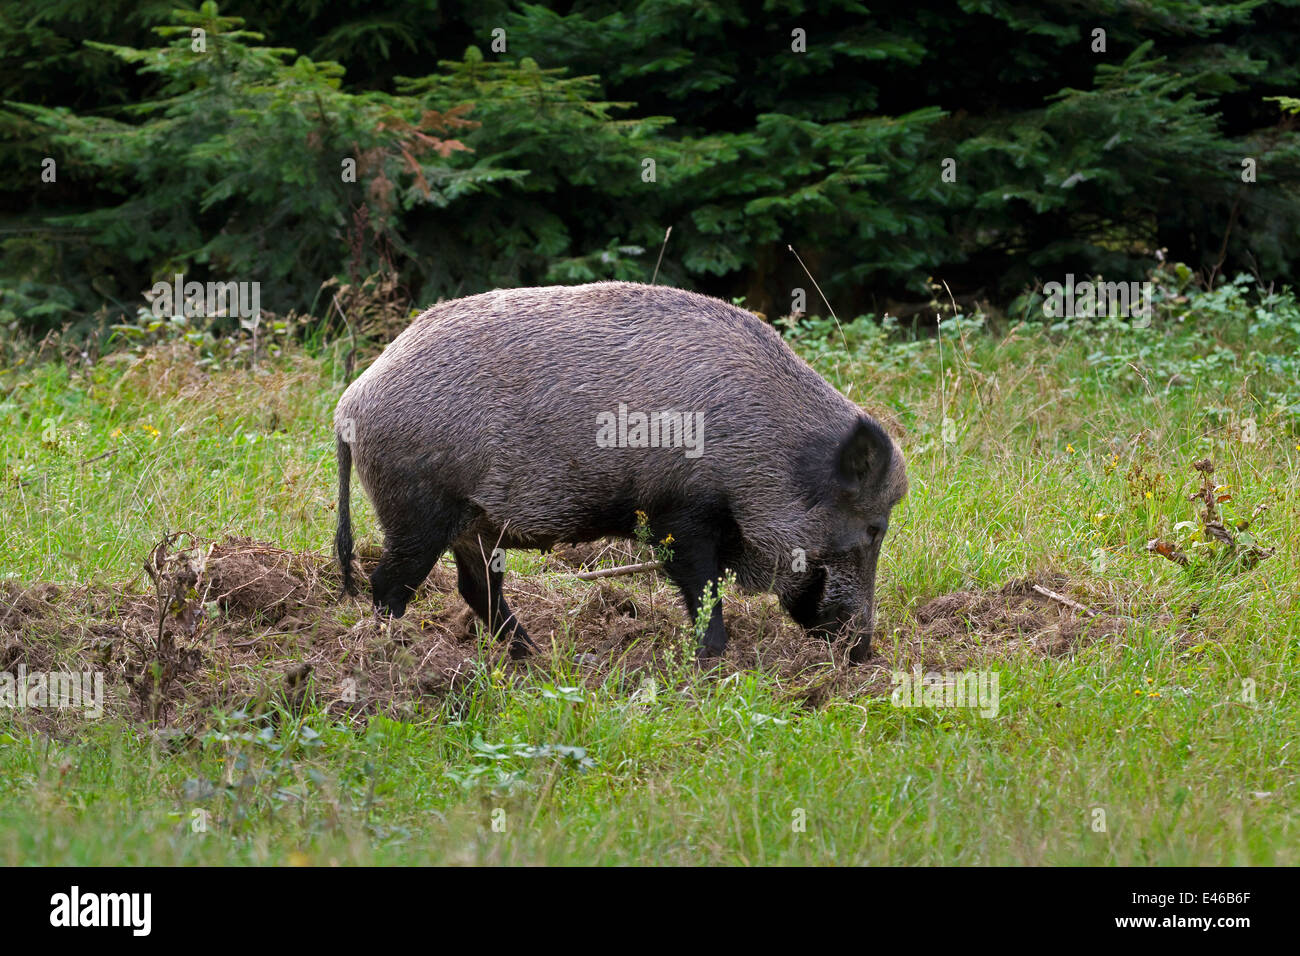 Wild boar (Sus scrofa) sow in forest rooting up the soil in search of food - Stock Image